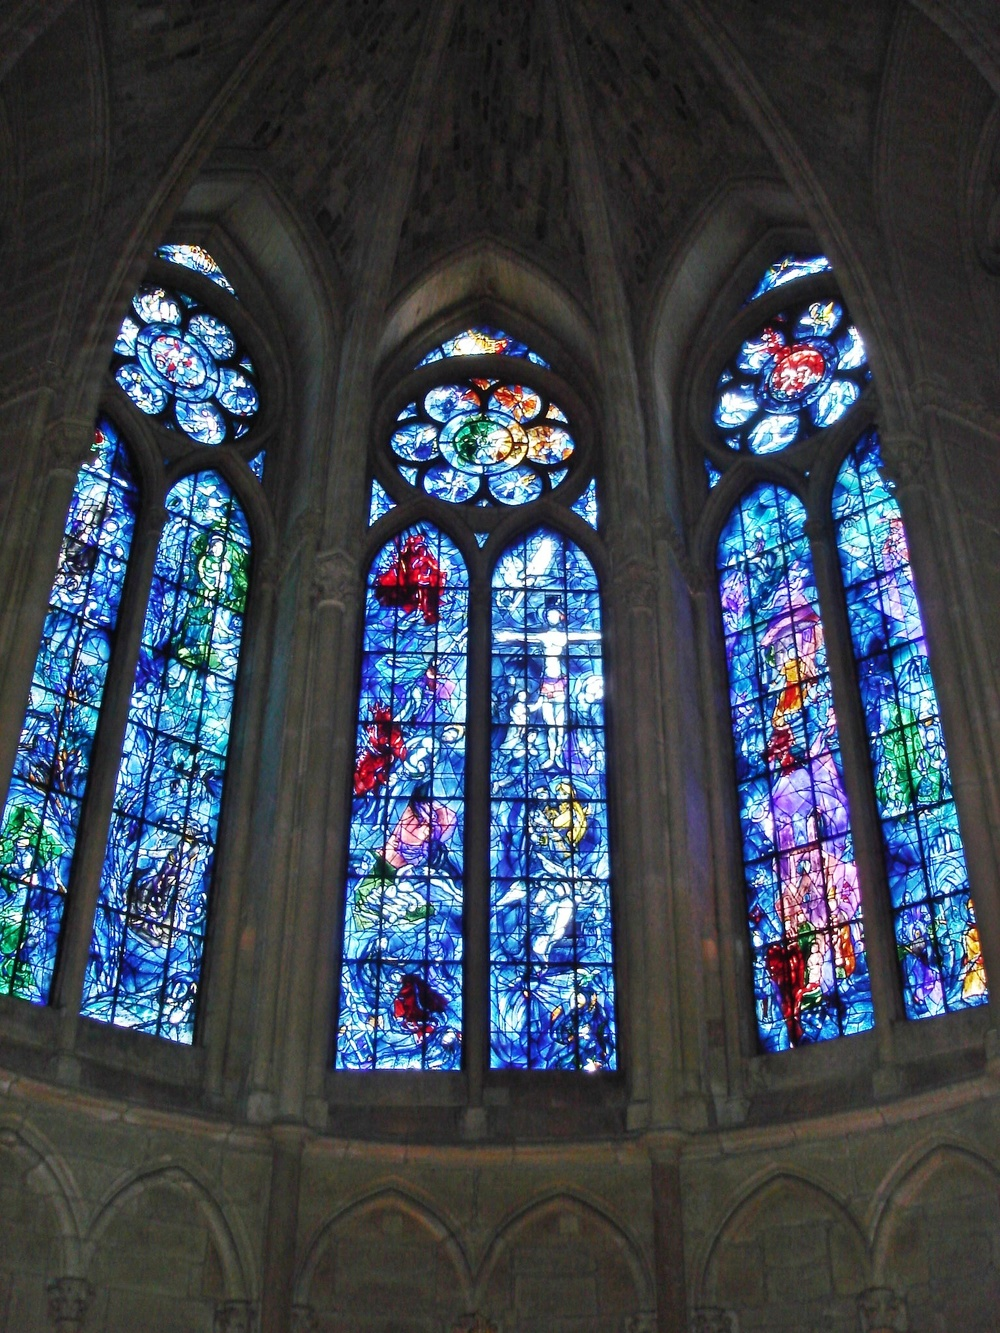 Click photo to download. Caption: Stained-glass windows in the axial chapel of Reims Cathedral in France, designed by Marc Chagall and made by Charles Marq in 1974. Credit: Peter Lucas via Wikimedia Commons.